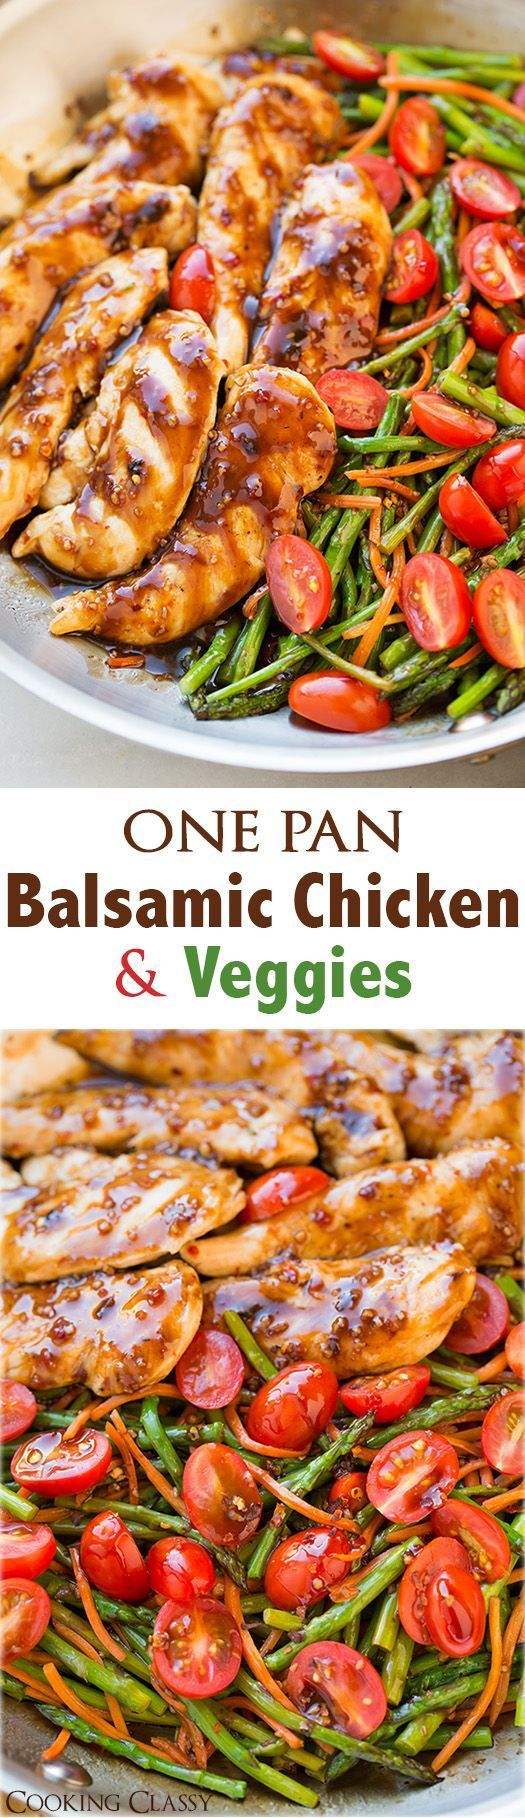 Clean Eating One Pan Balsamic Chicken and Veggies Recipe plus 28 more of the most pinned Clean Eating recipes.